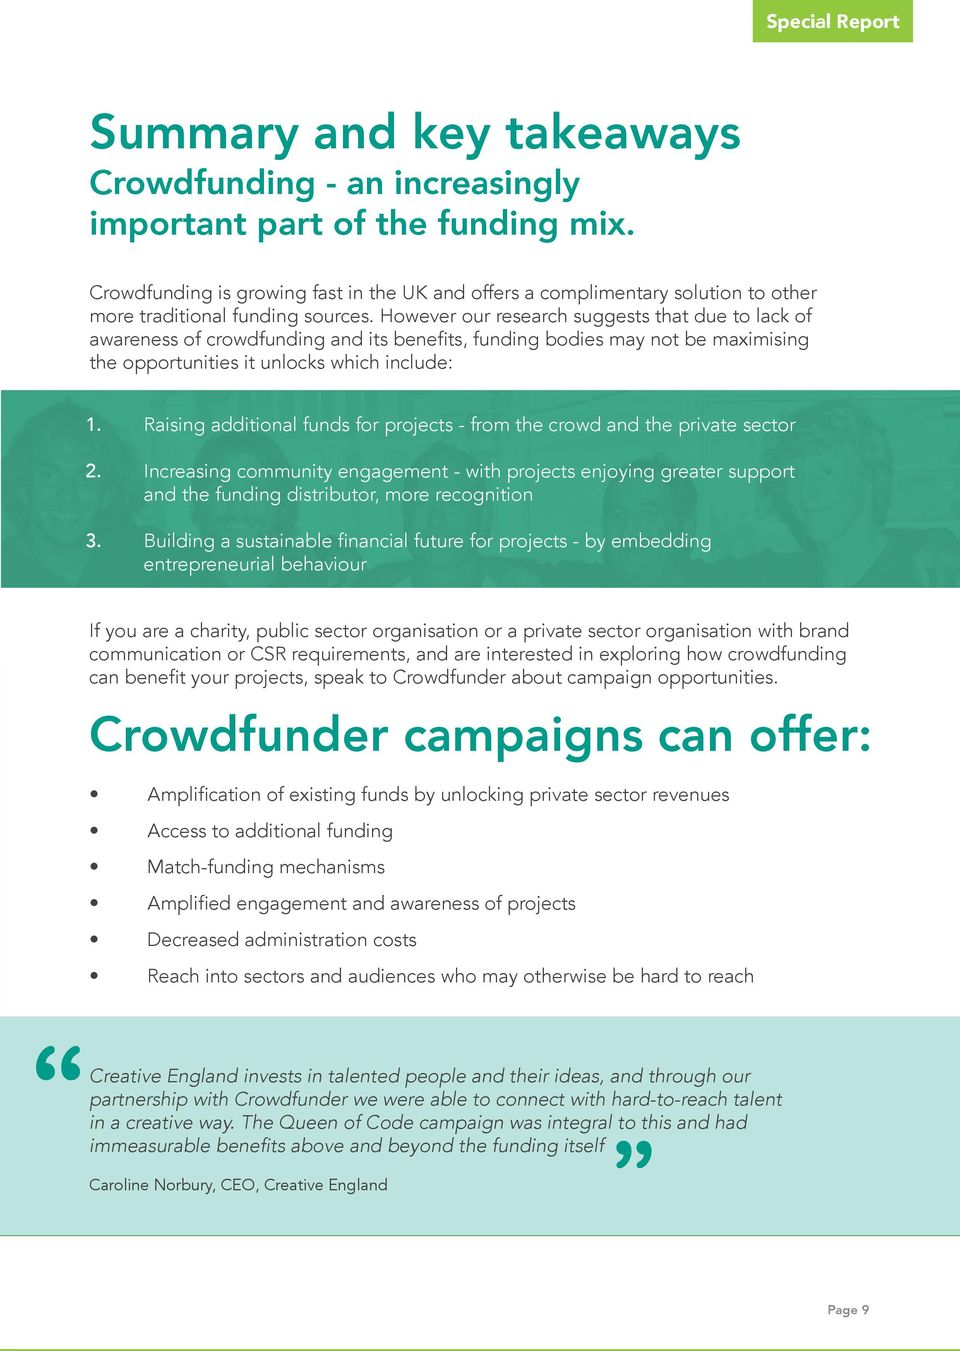 However our research suggests that due to lack of awareness of crowdfunding and its benefits, funding bodies may not be maximising the opportunities it unlocks which include: 1.